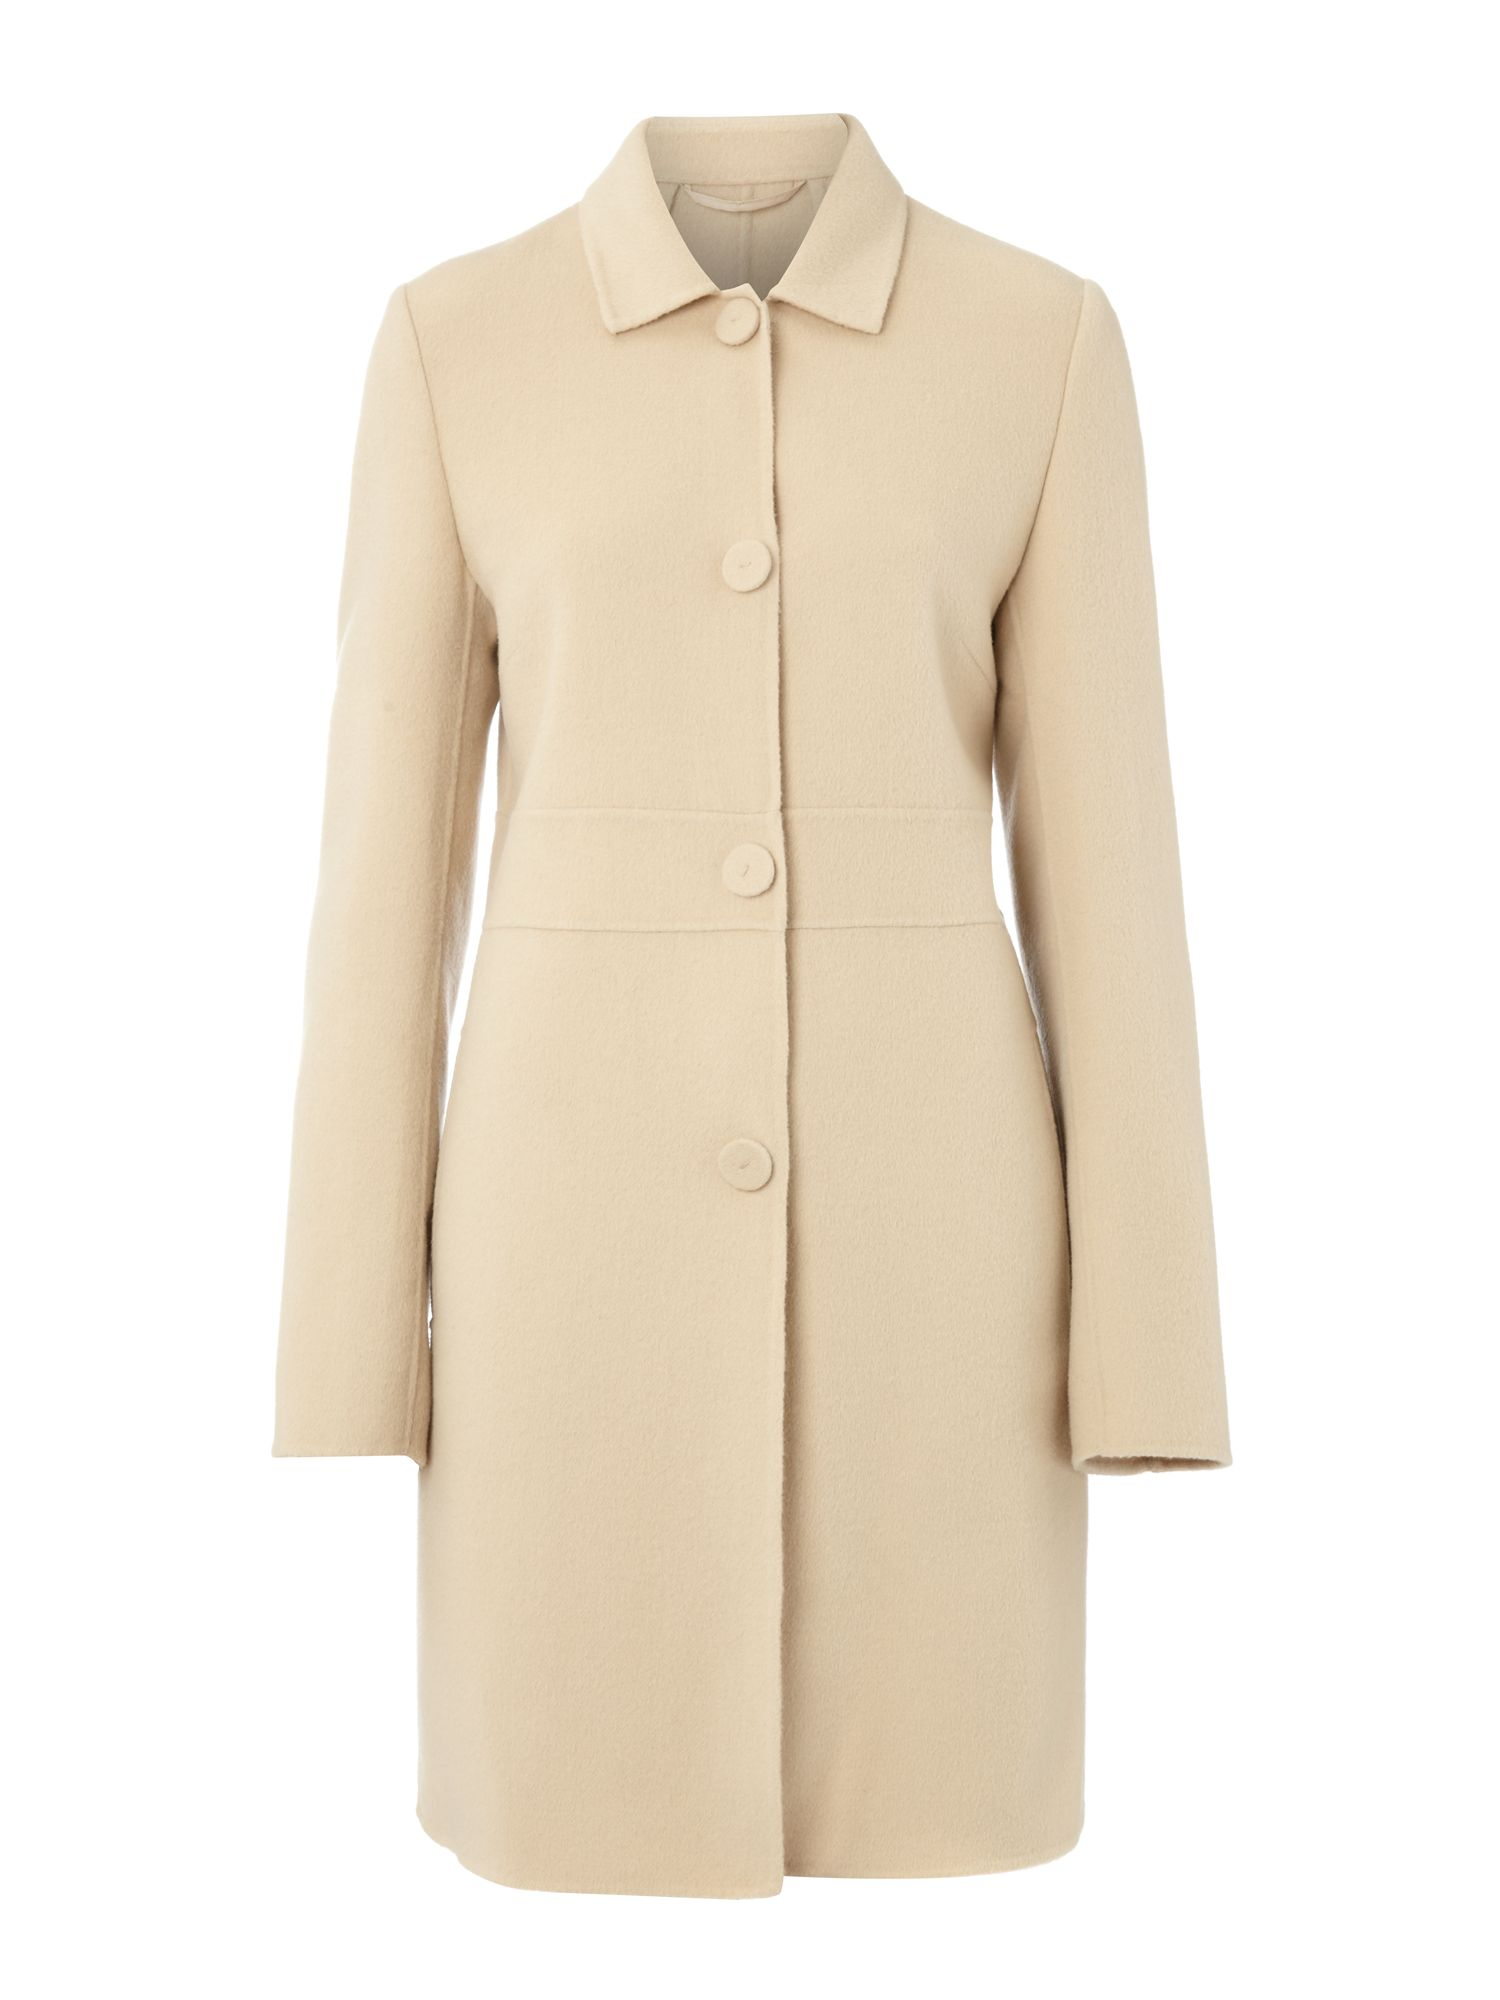 Women's MaxMara Studio Cherson princess coat, Beige